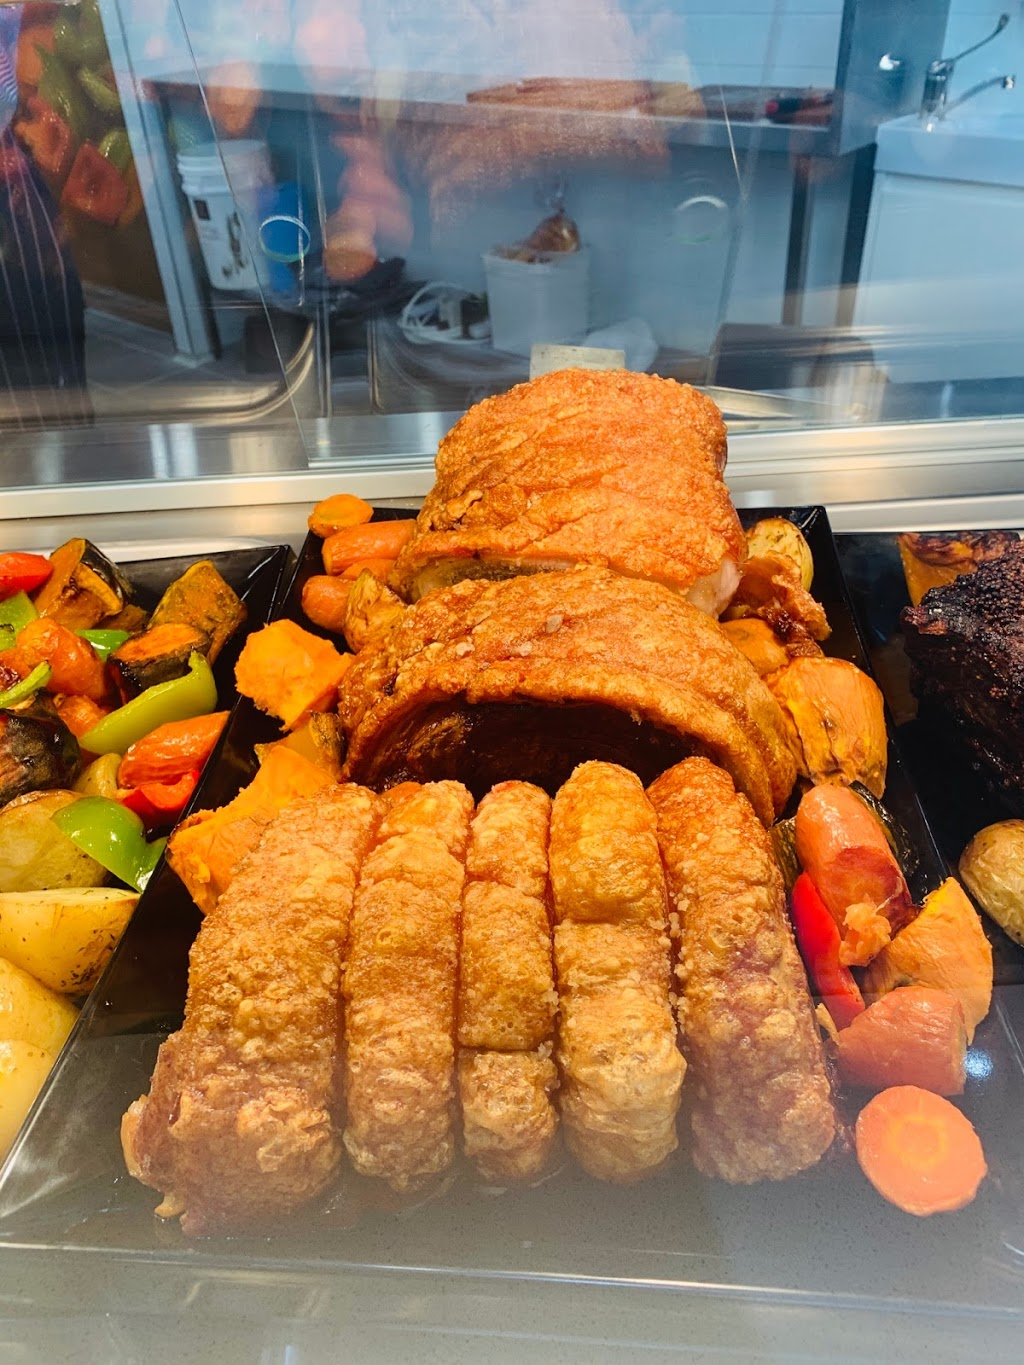 Carvery club | cafe | Highlands marketplace, 197 Old Hume Hwy, Mittagong NSW 2575, Australia | 0487723398 OR +61 487 723 398